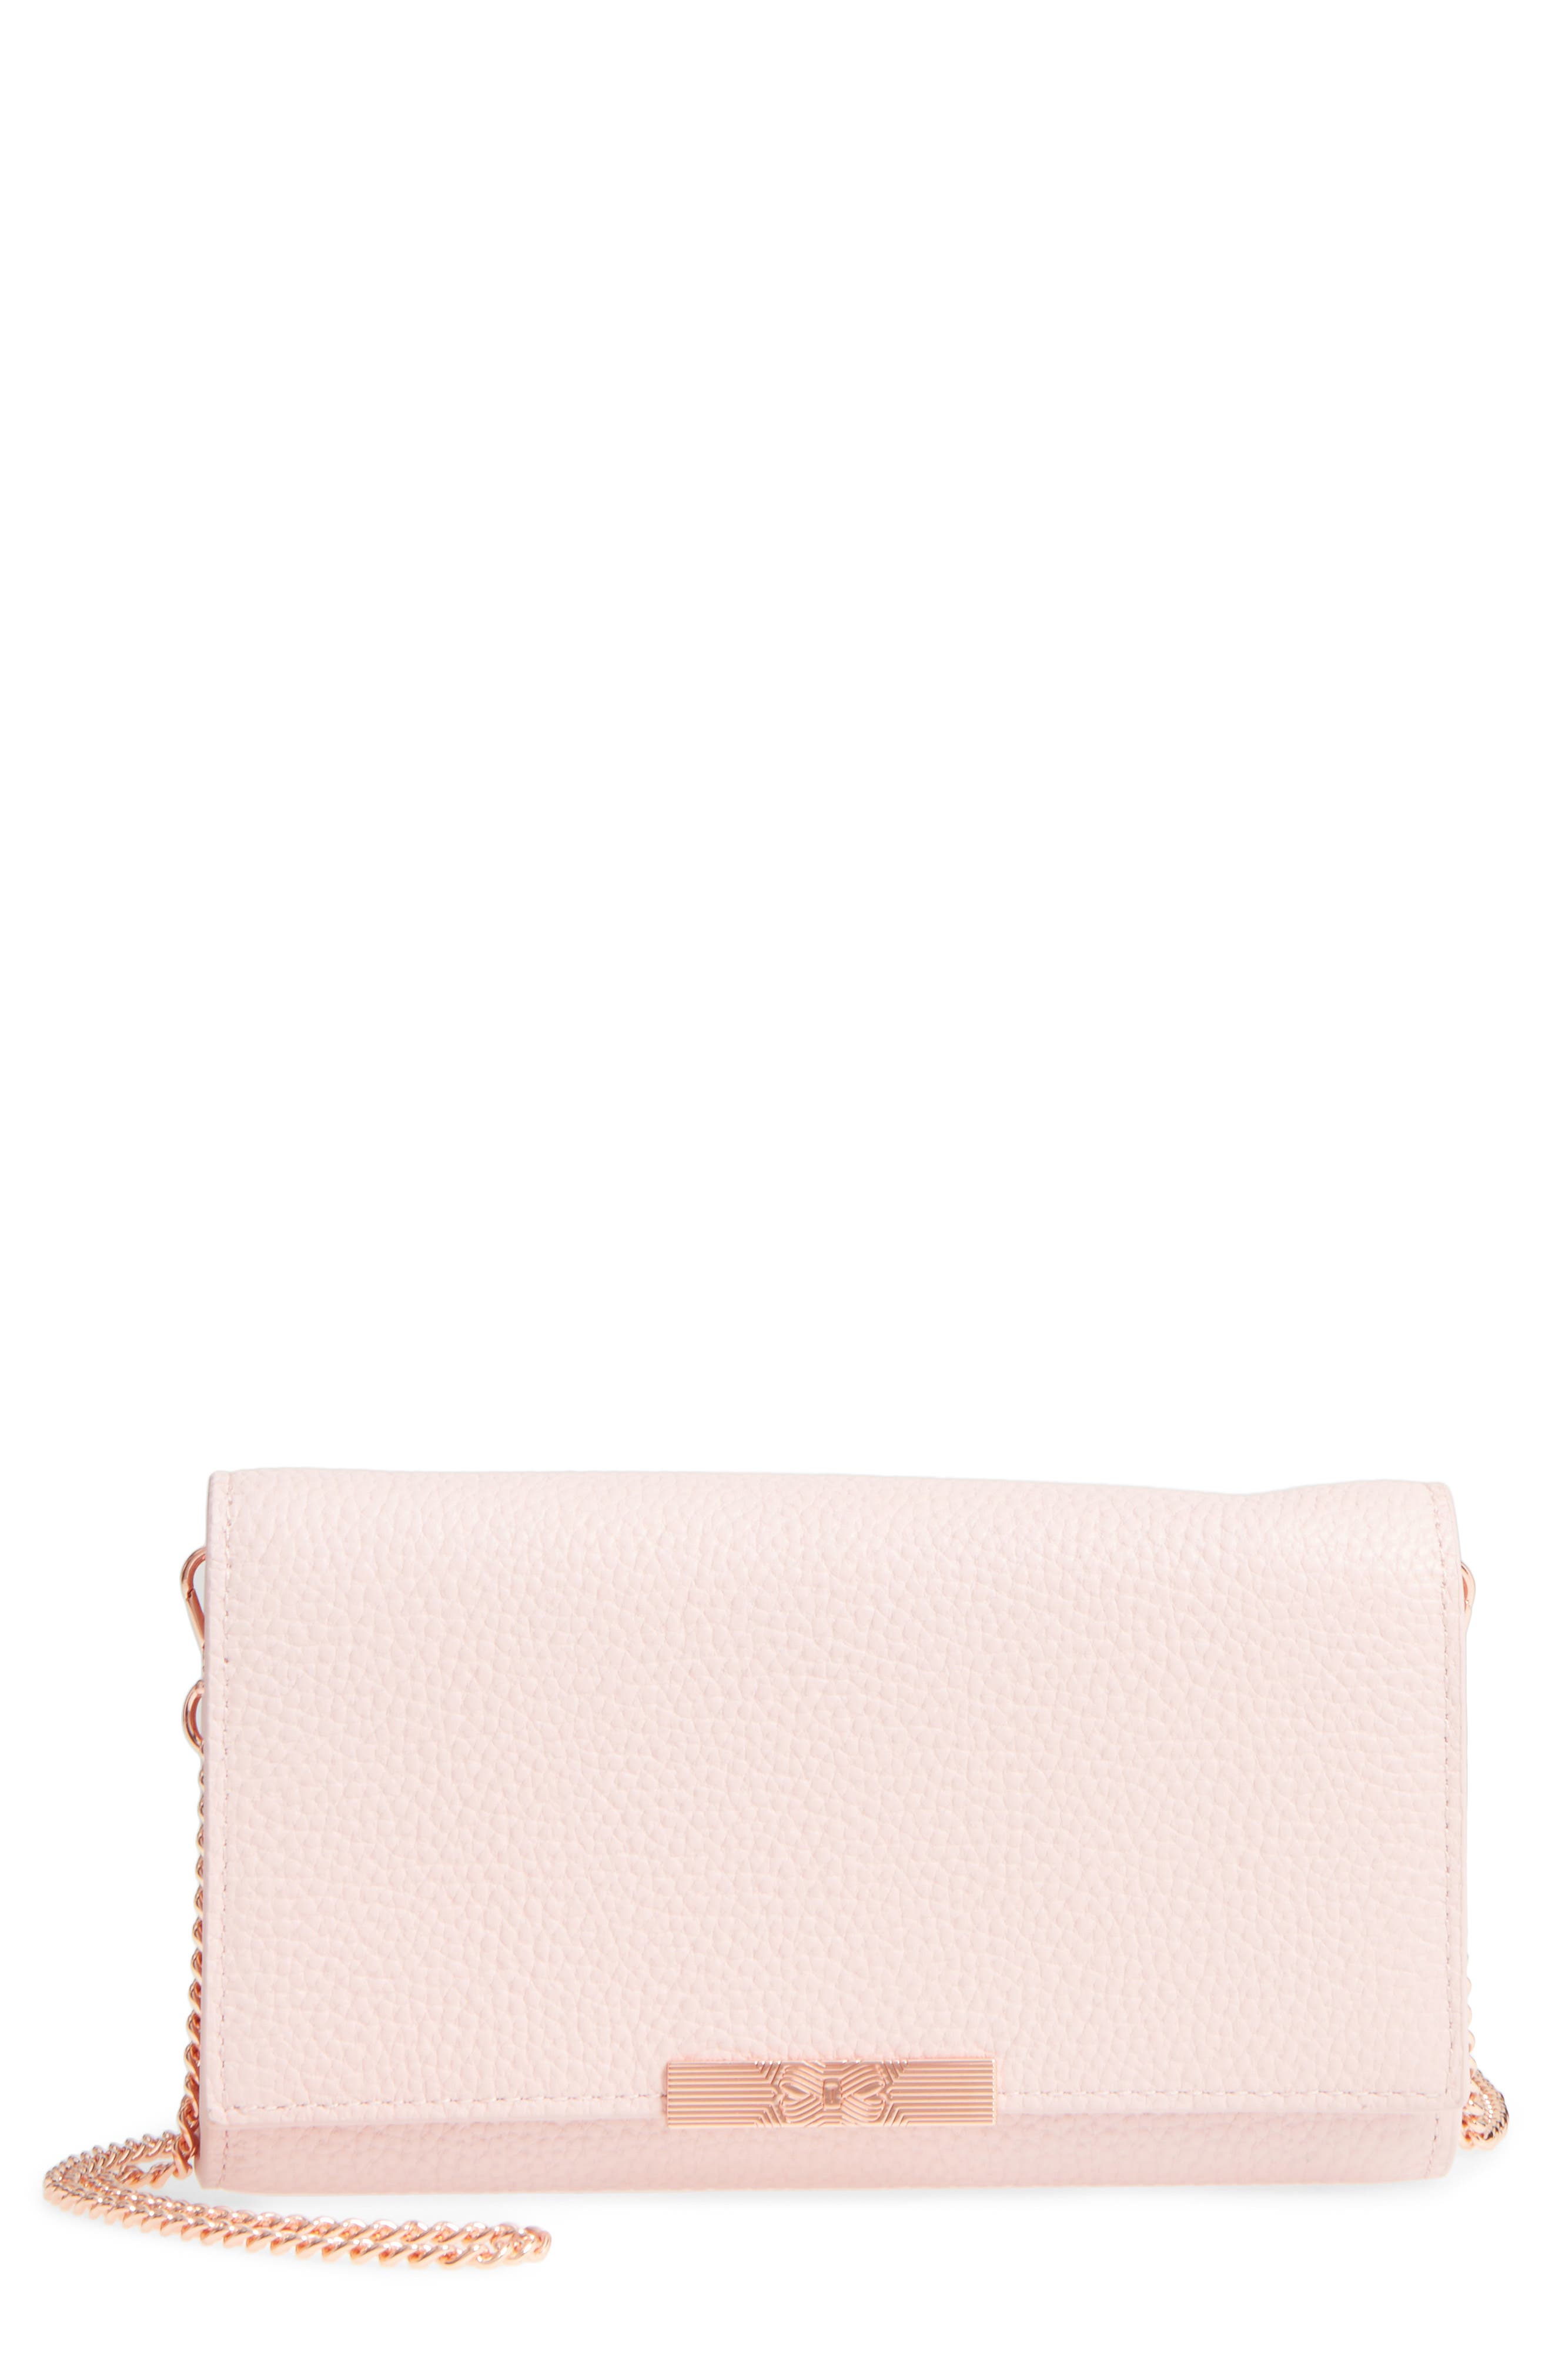 Alternate Image 1 Selected - Ted Baker London Leather Wallet on a Chain